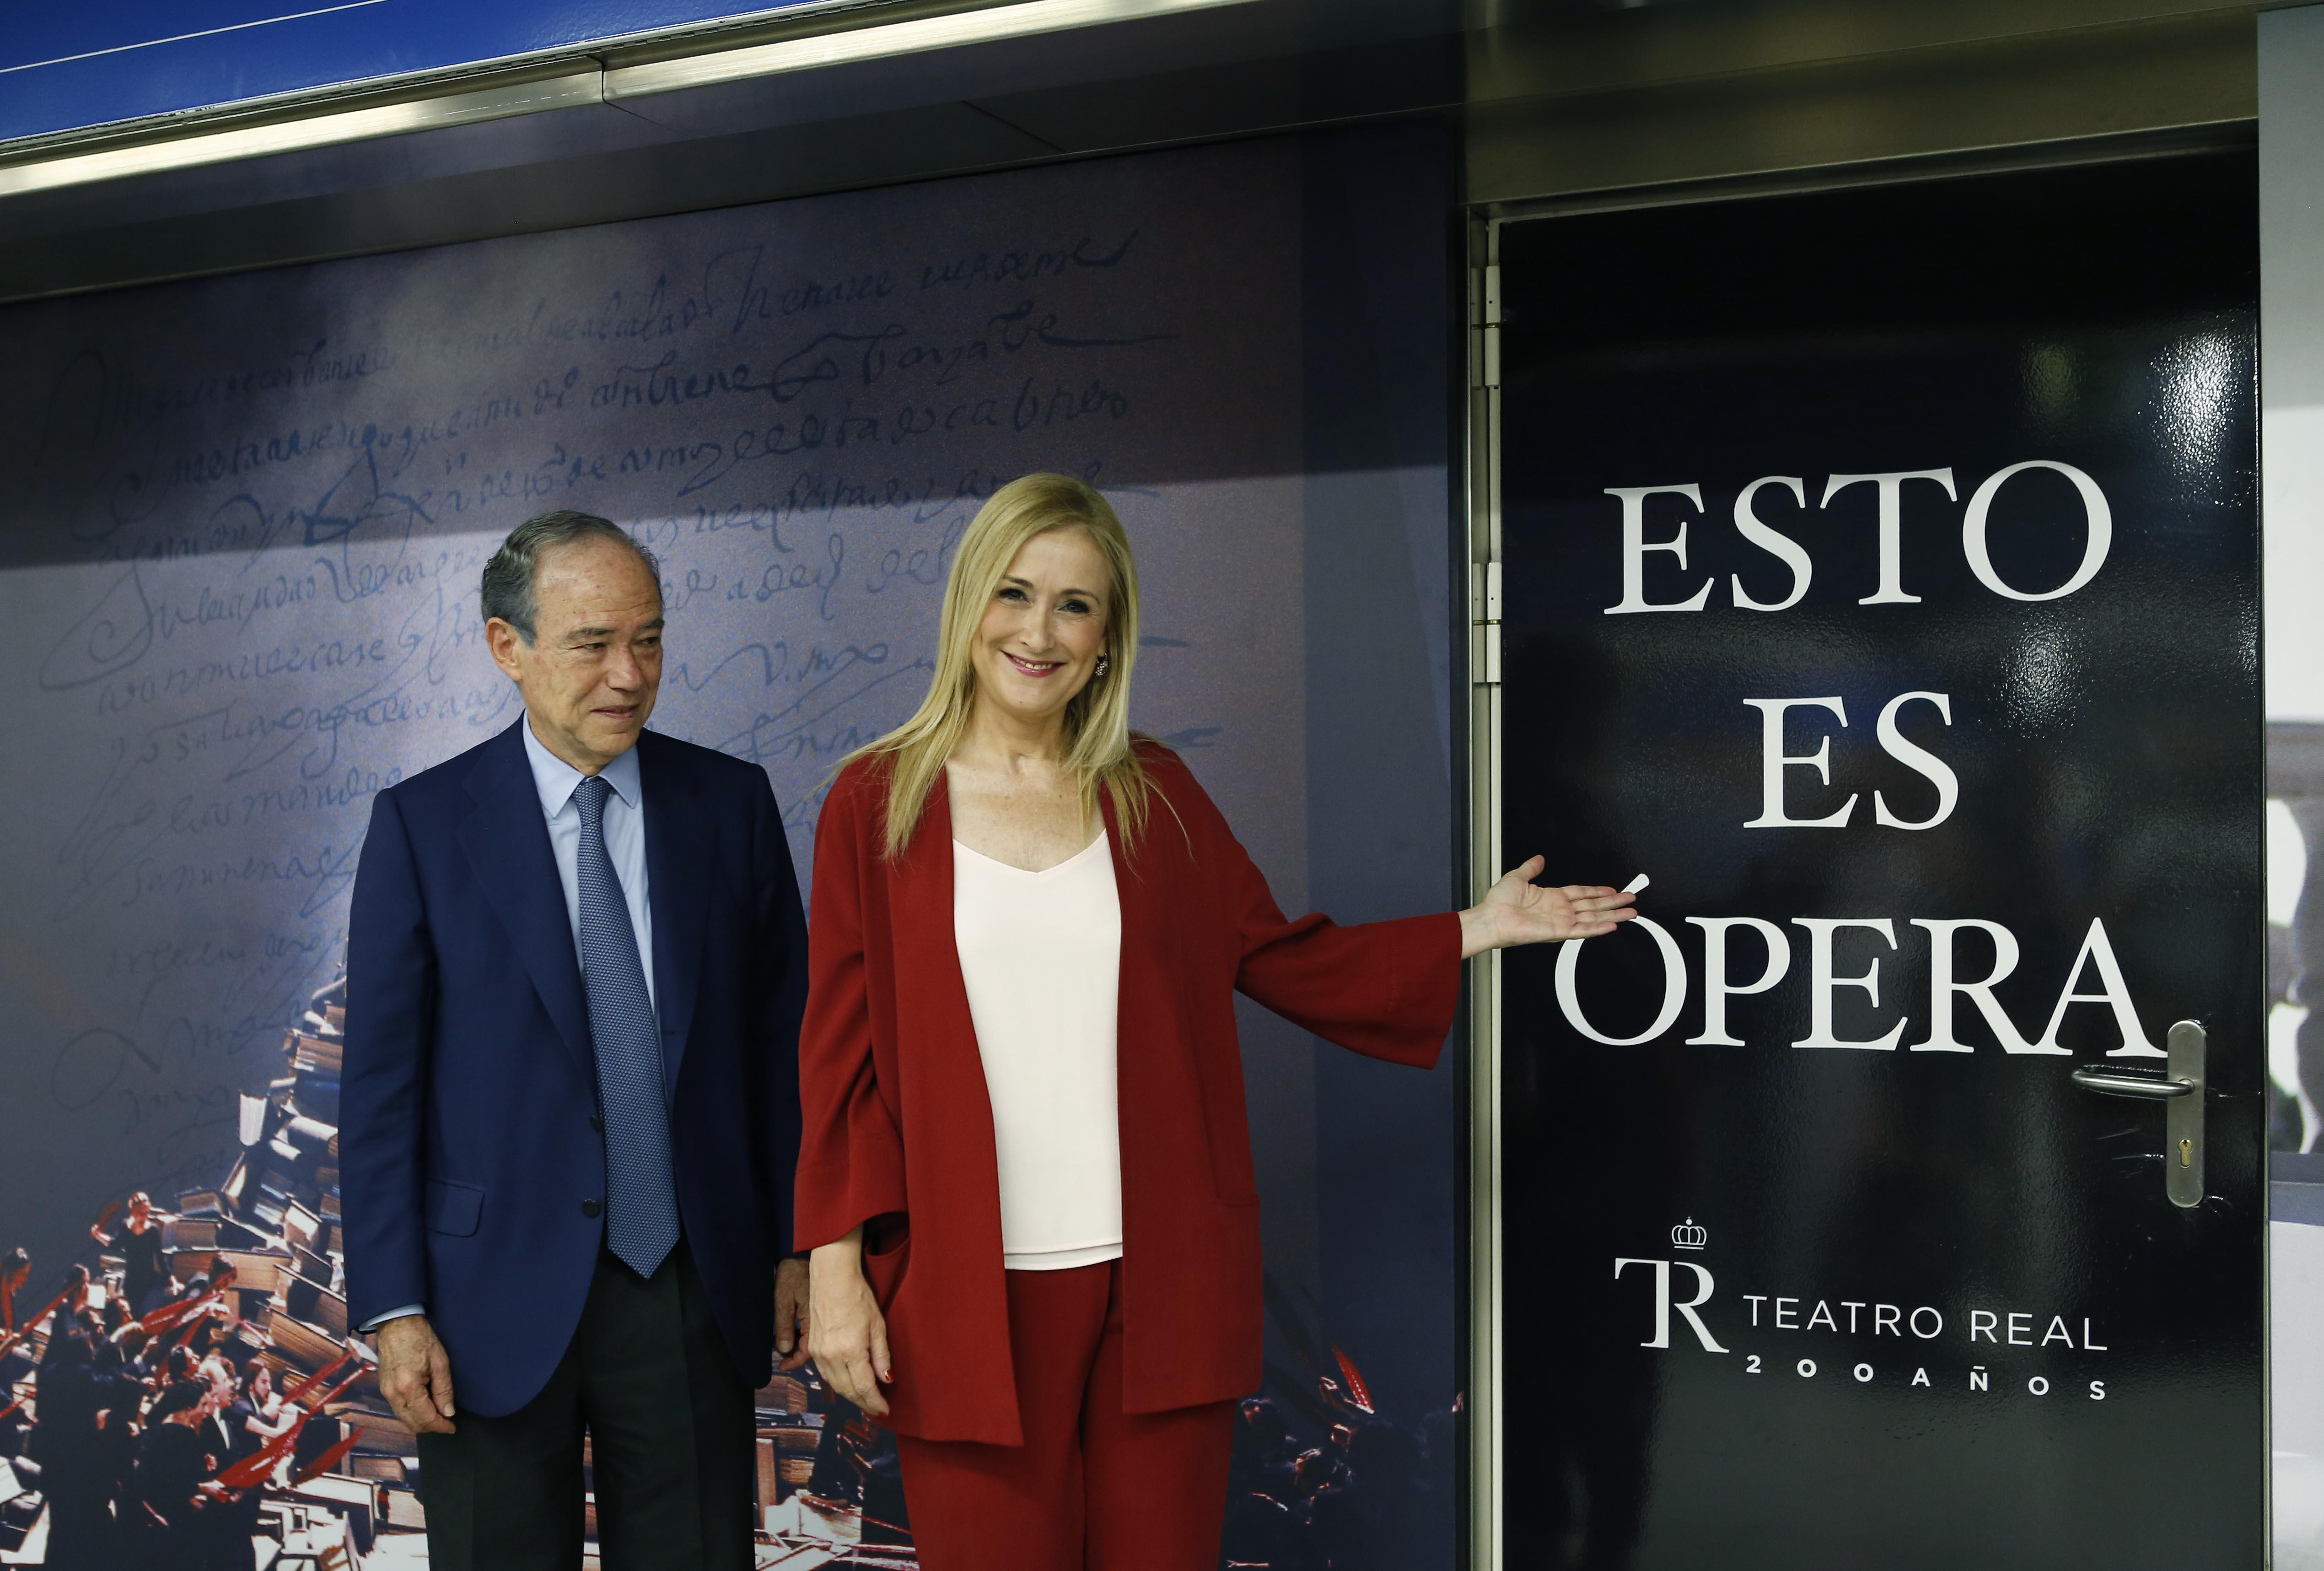 Cifuentes Moves The Teatro Real Royal Opera House Into